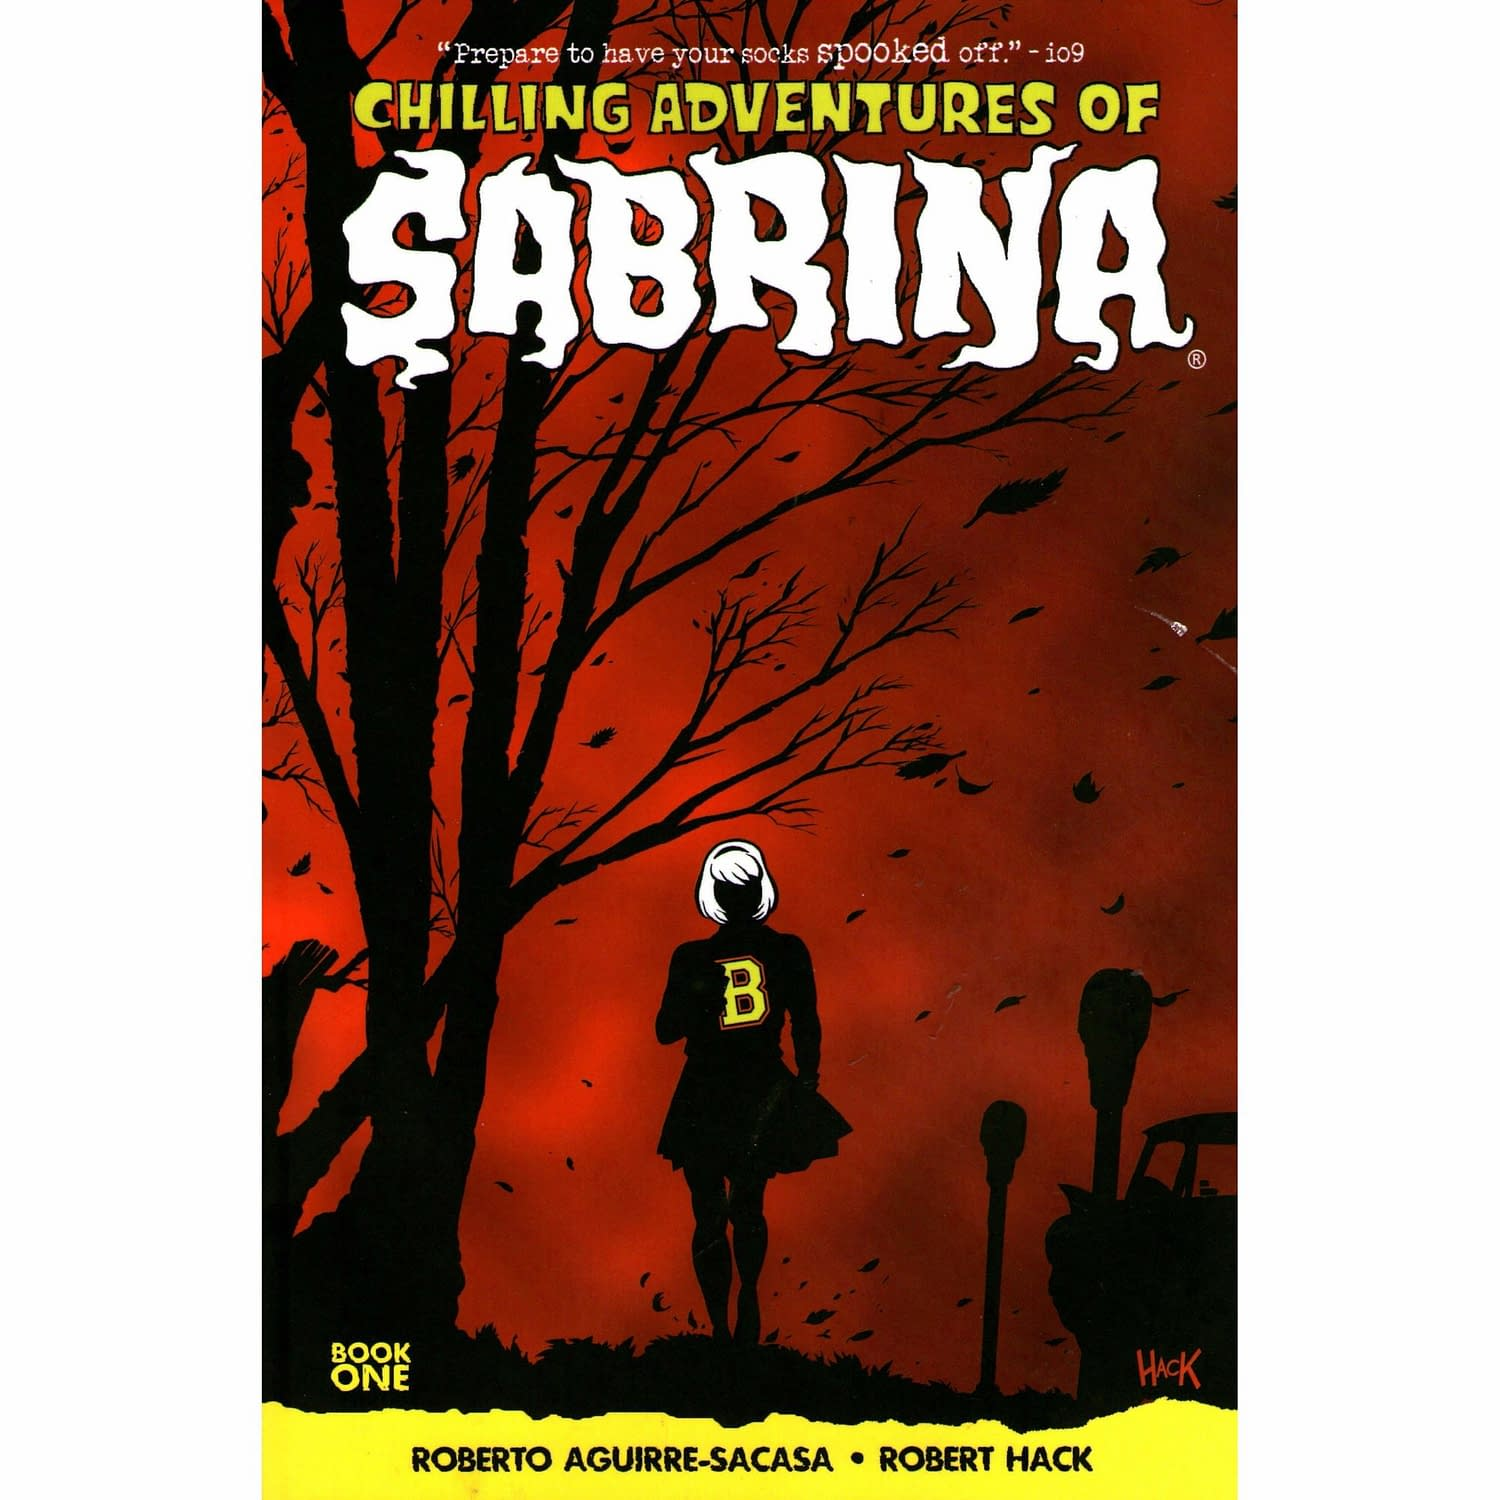 Chilling Adventures of Sabrina COver